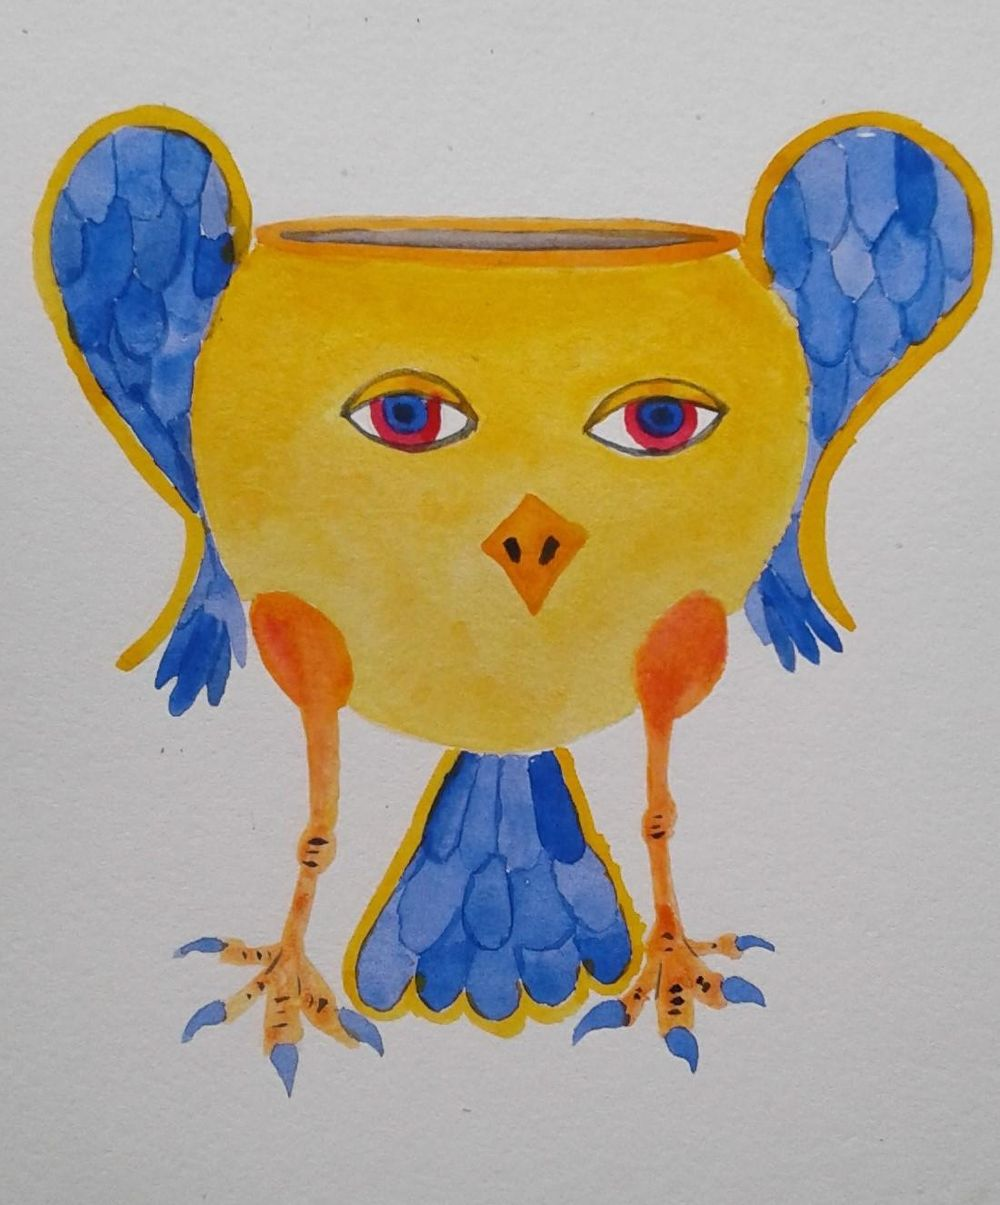 Whimsical Creatures - image 4 - student project